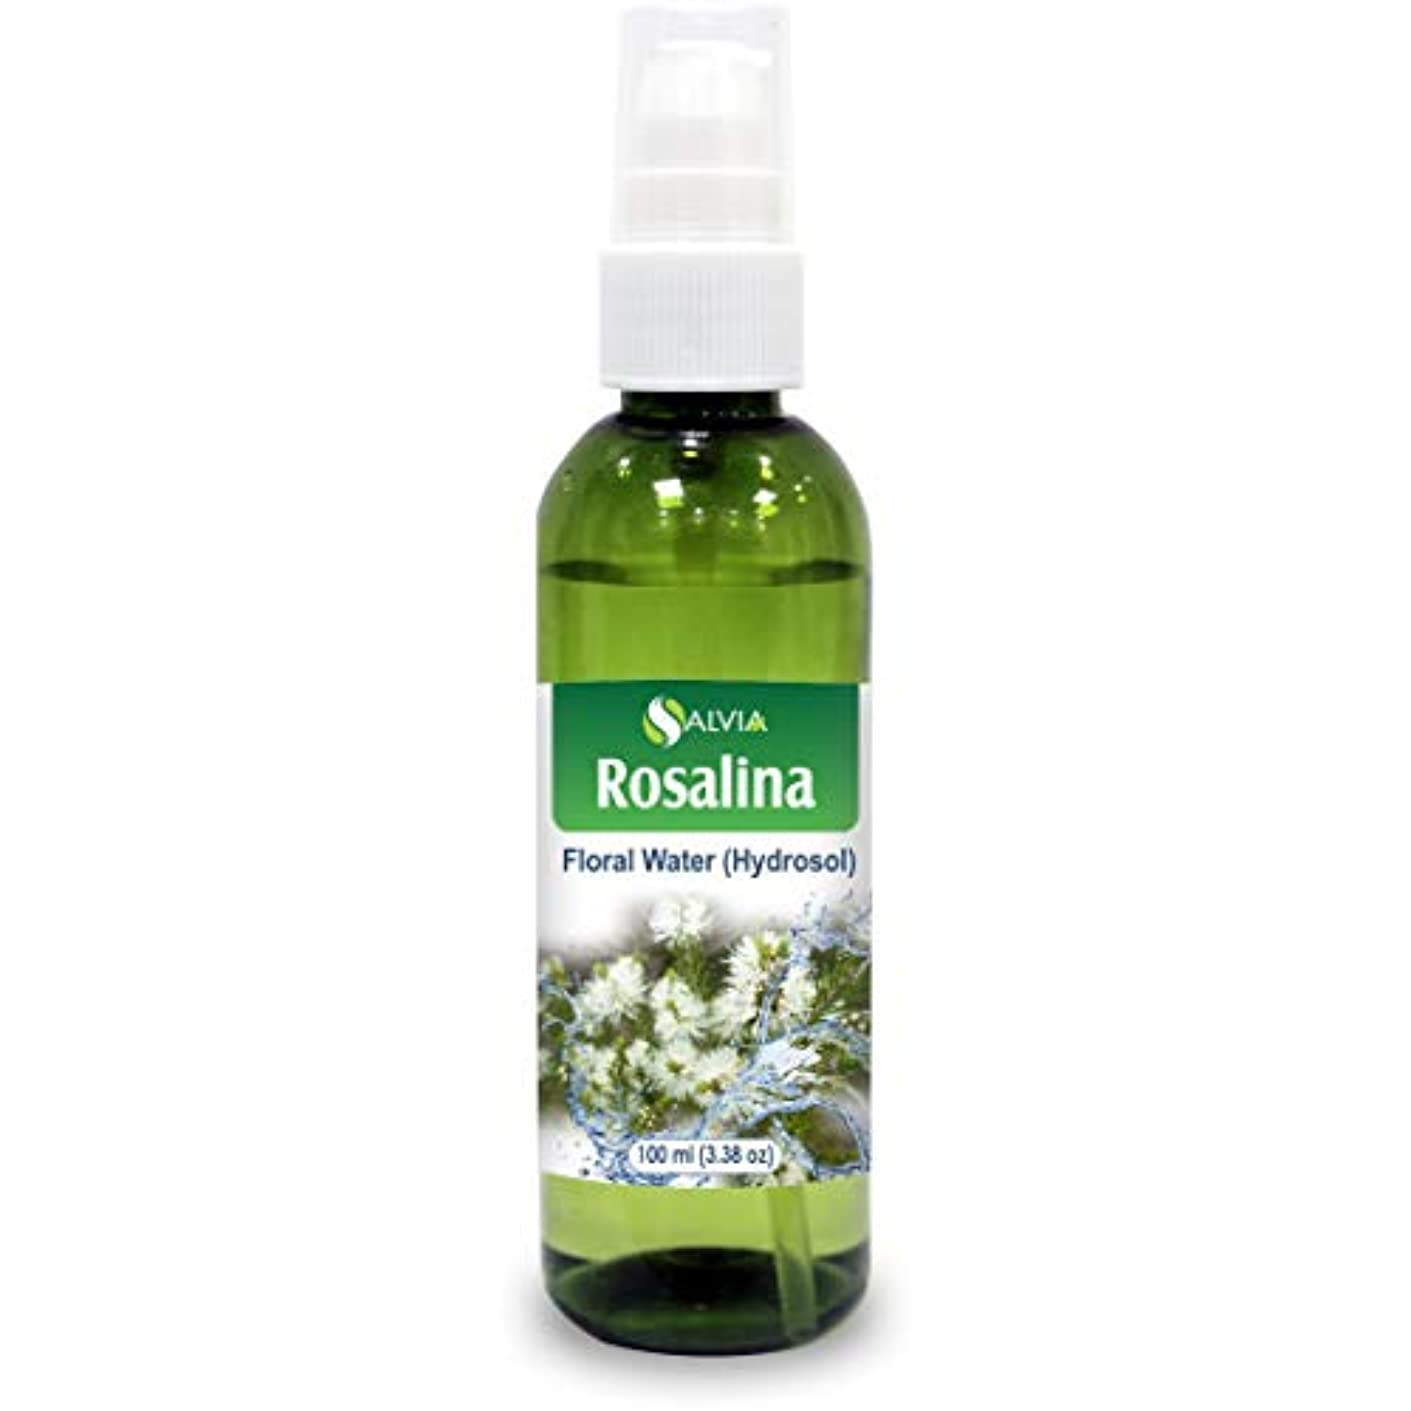 自信があるスティーブンソン一流Rosalina Oil Floral Water 100ml (Hydrosol) 100% Pure And Natural